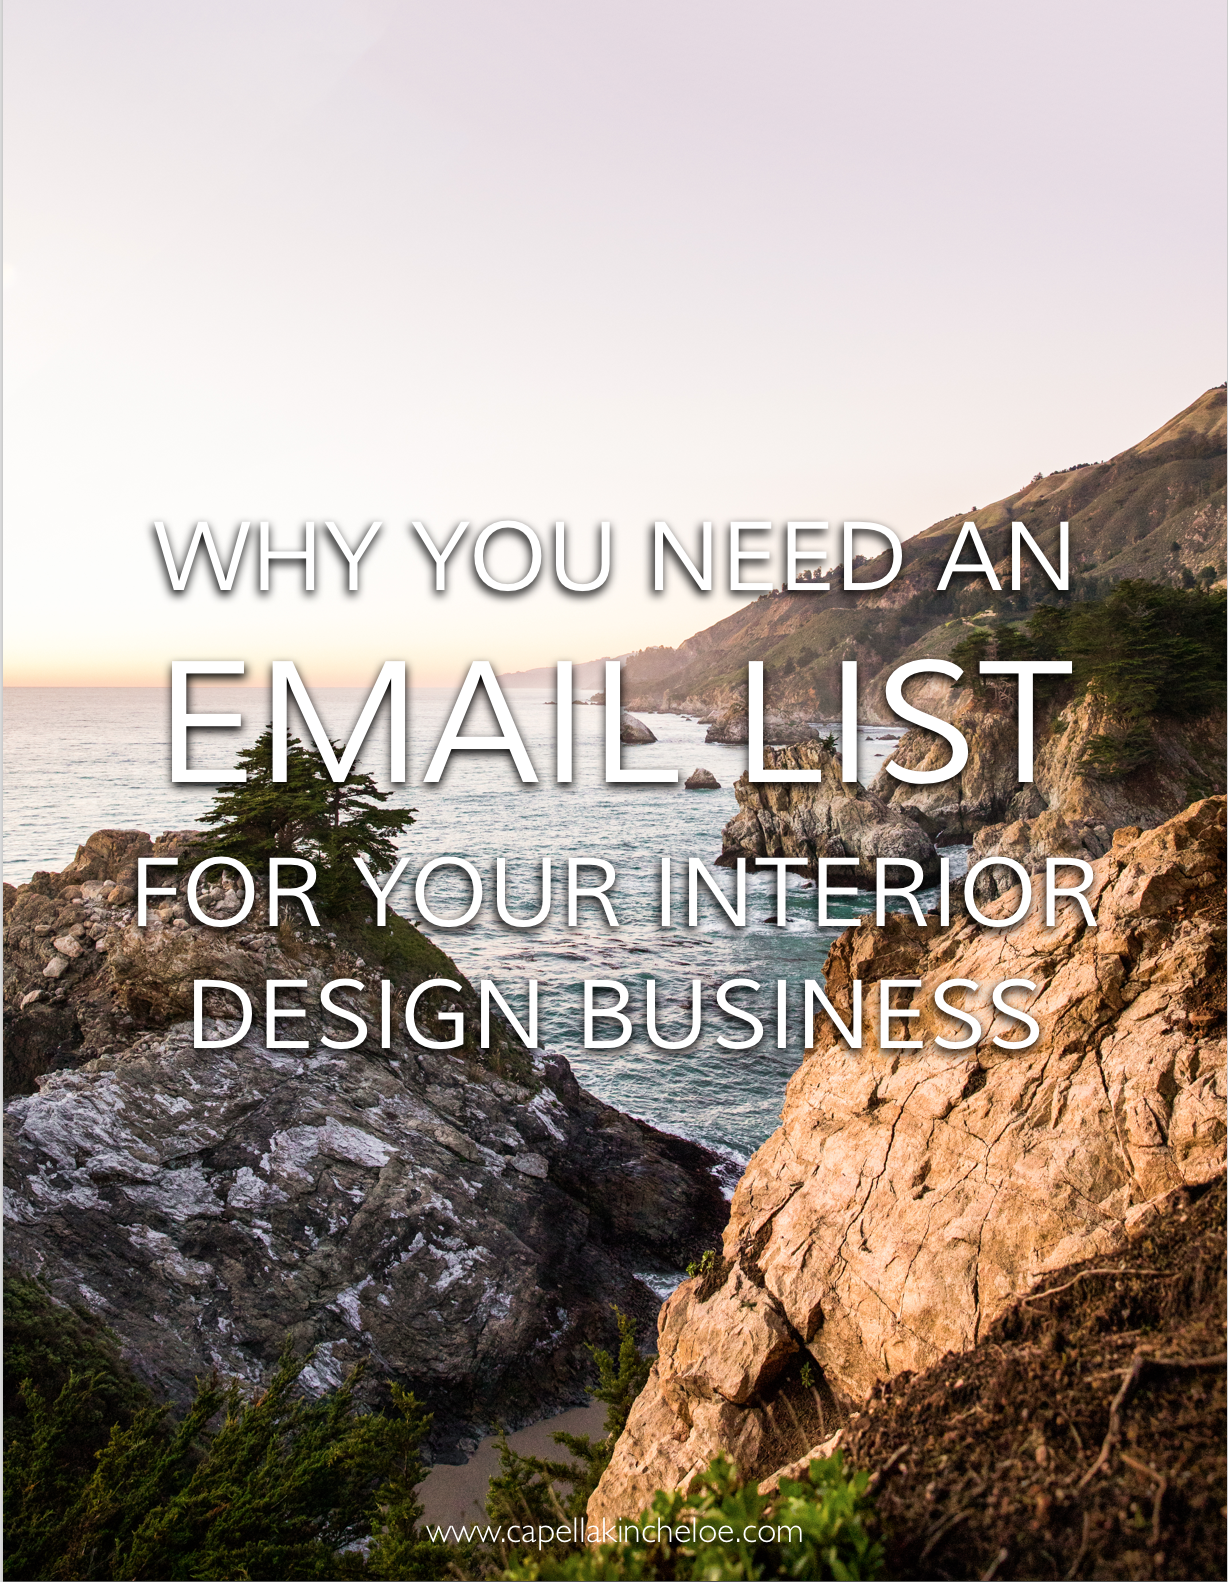 Not sure if you need to start an email list for your interior design business or what to do with the one you have? You're not alone. Running an interior design business is a unique niche and you can use email to market your business.